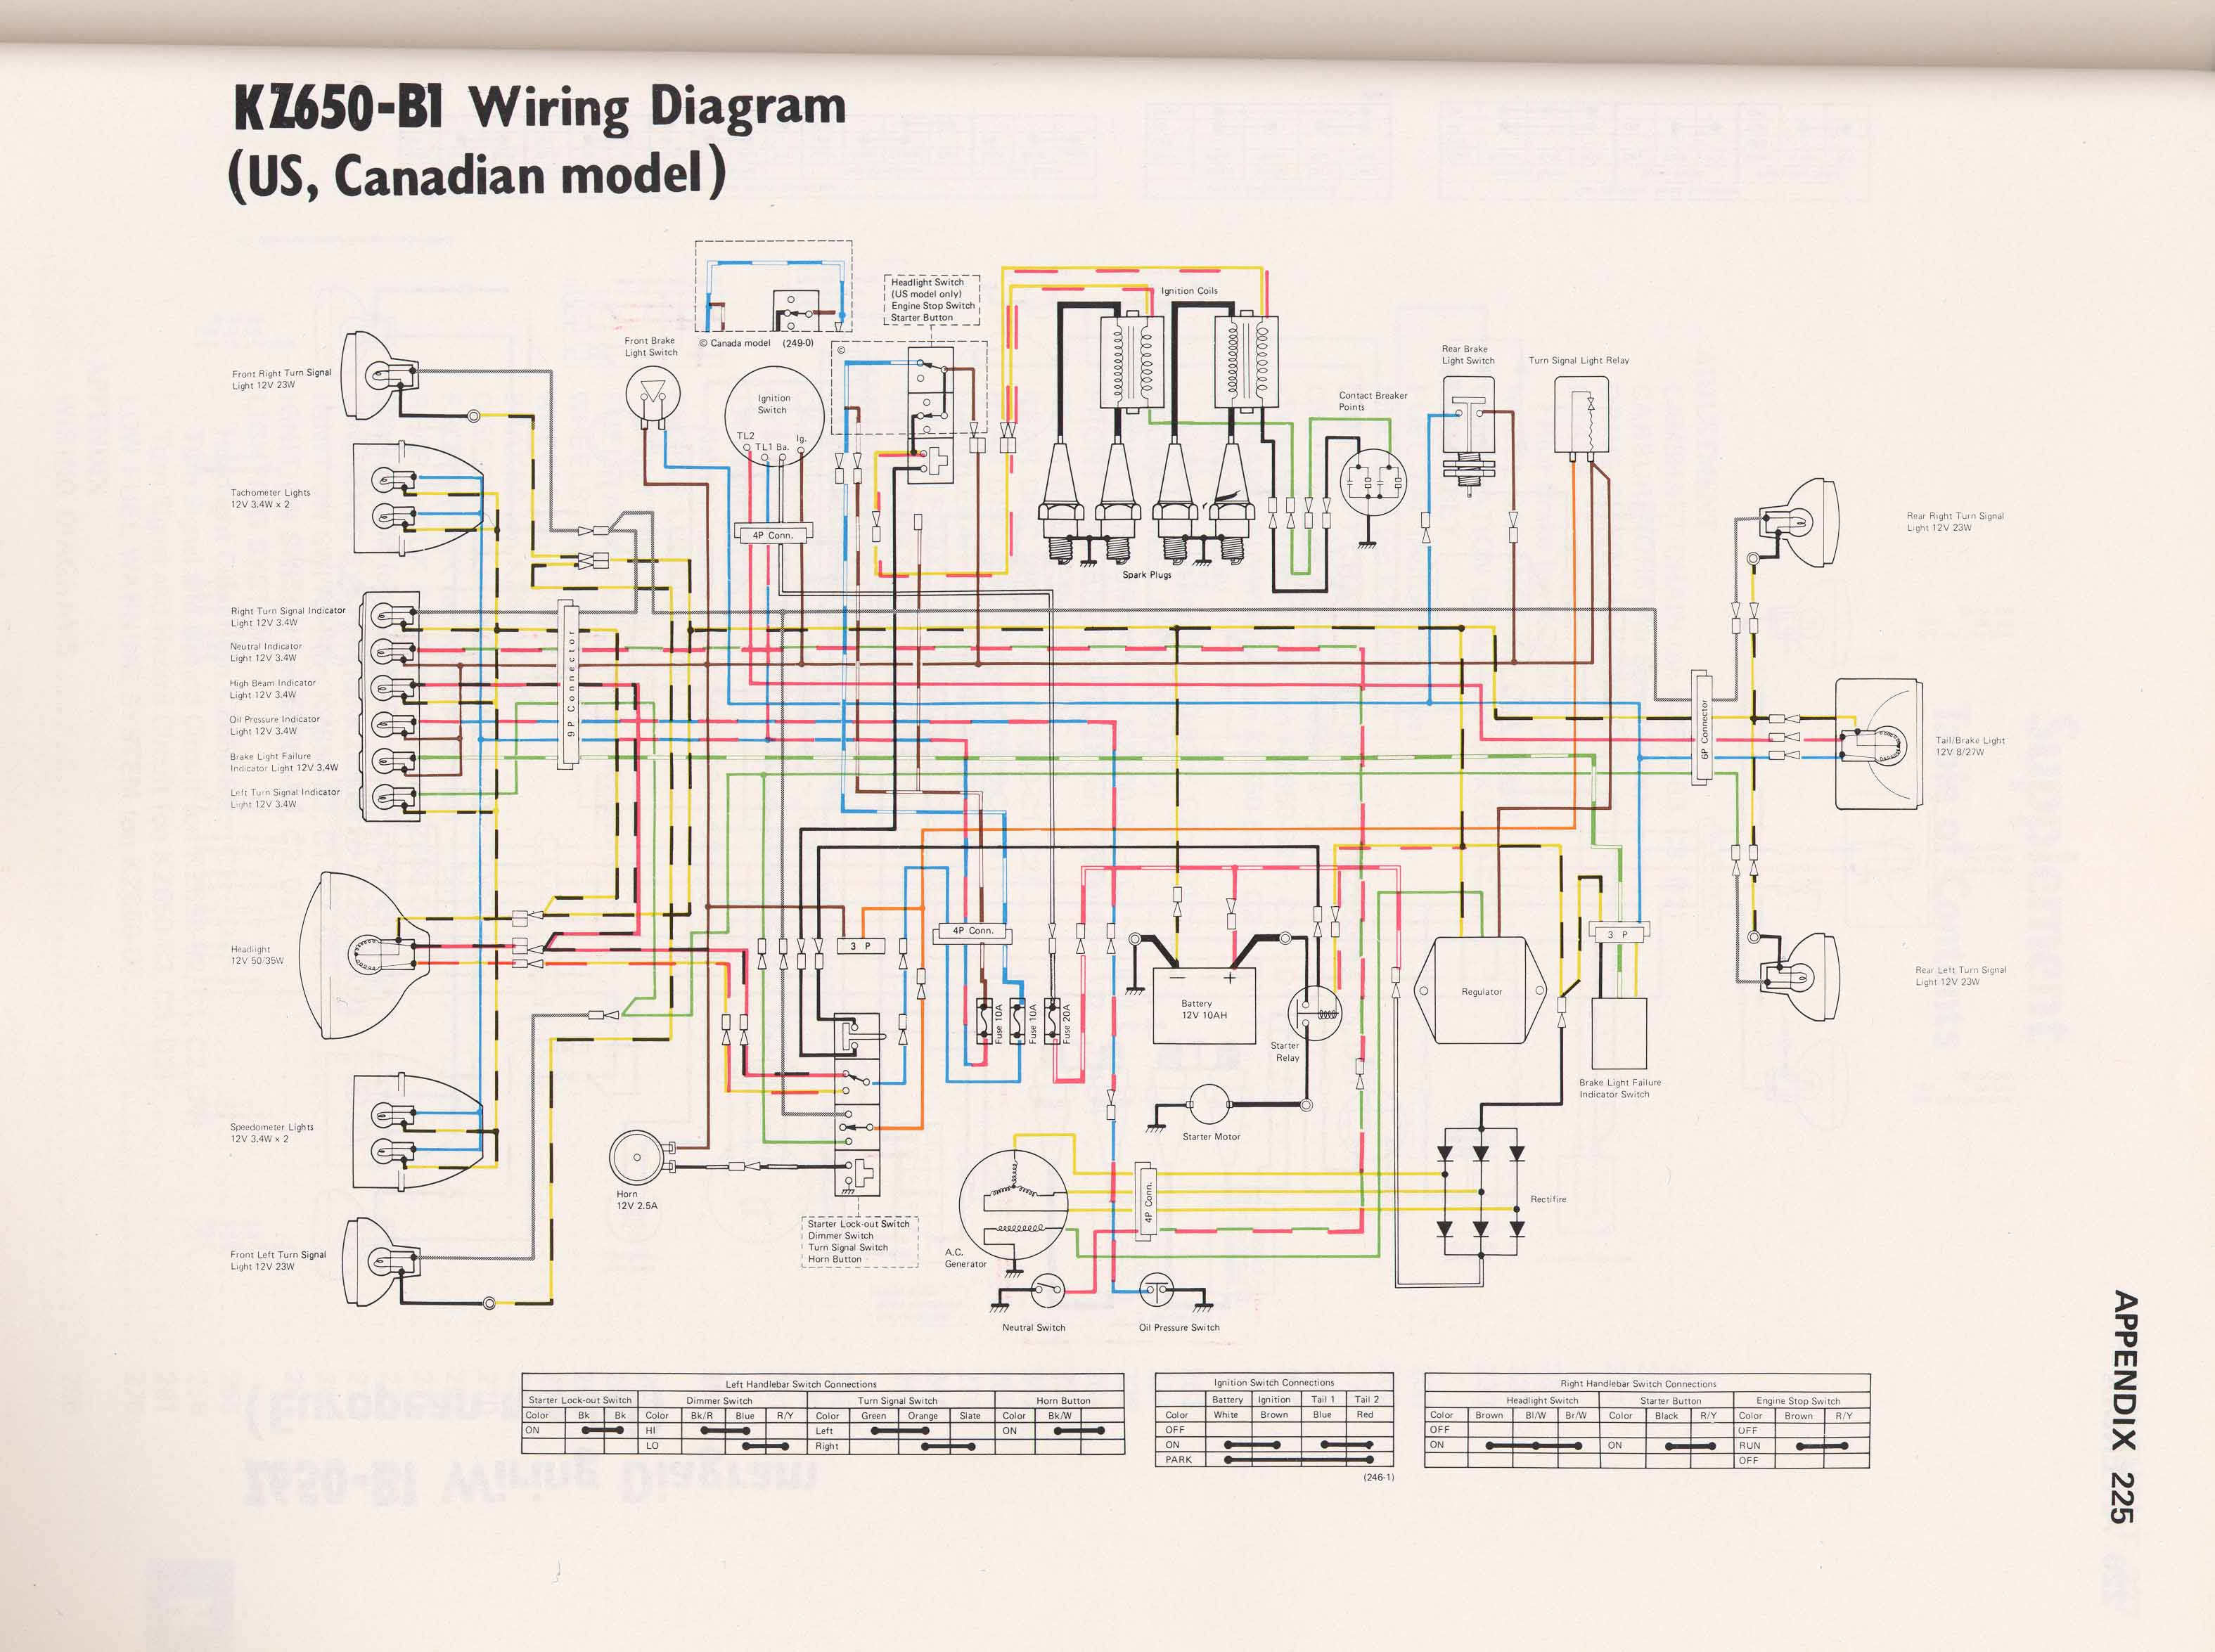 KZ650 B1 kz650 info wiring diagrams 1980 kz650 wiring diagram at readyjetset.co